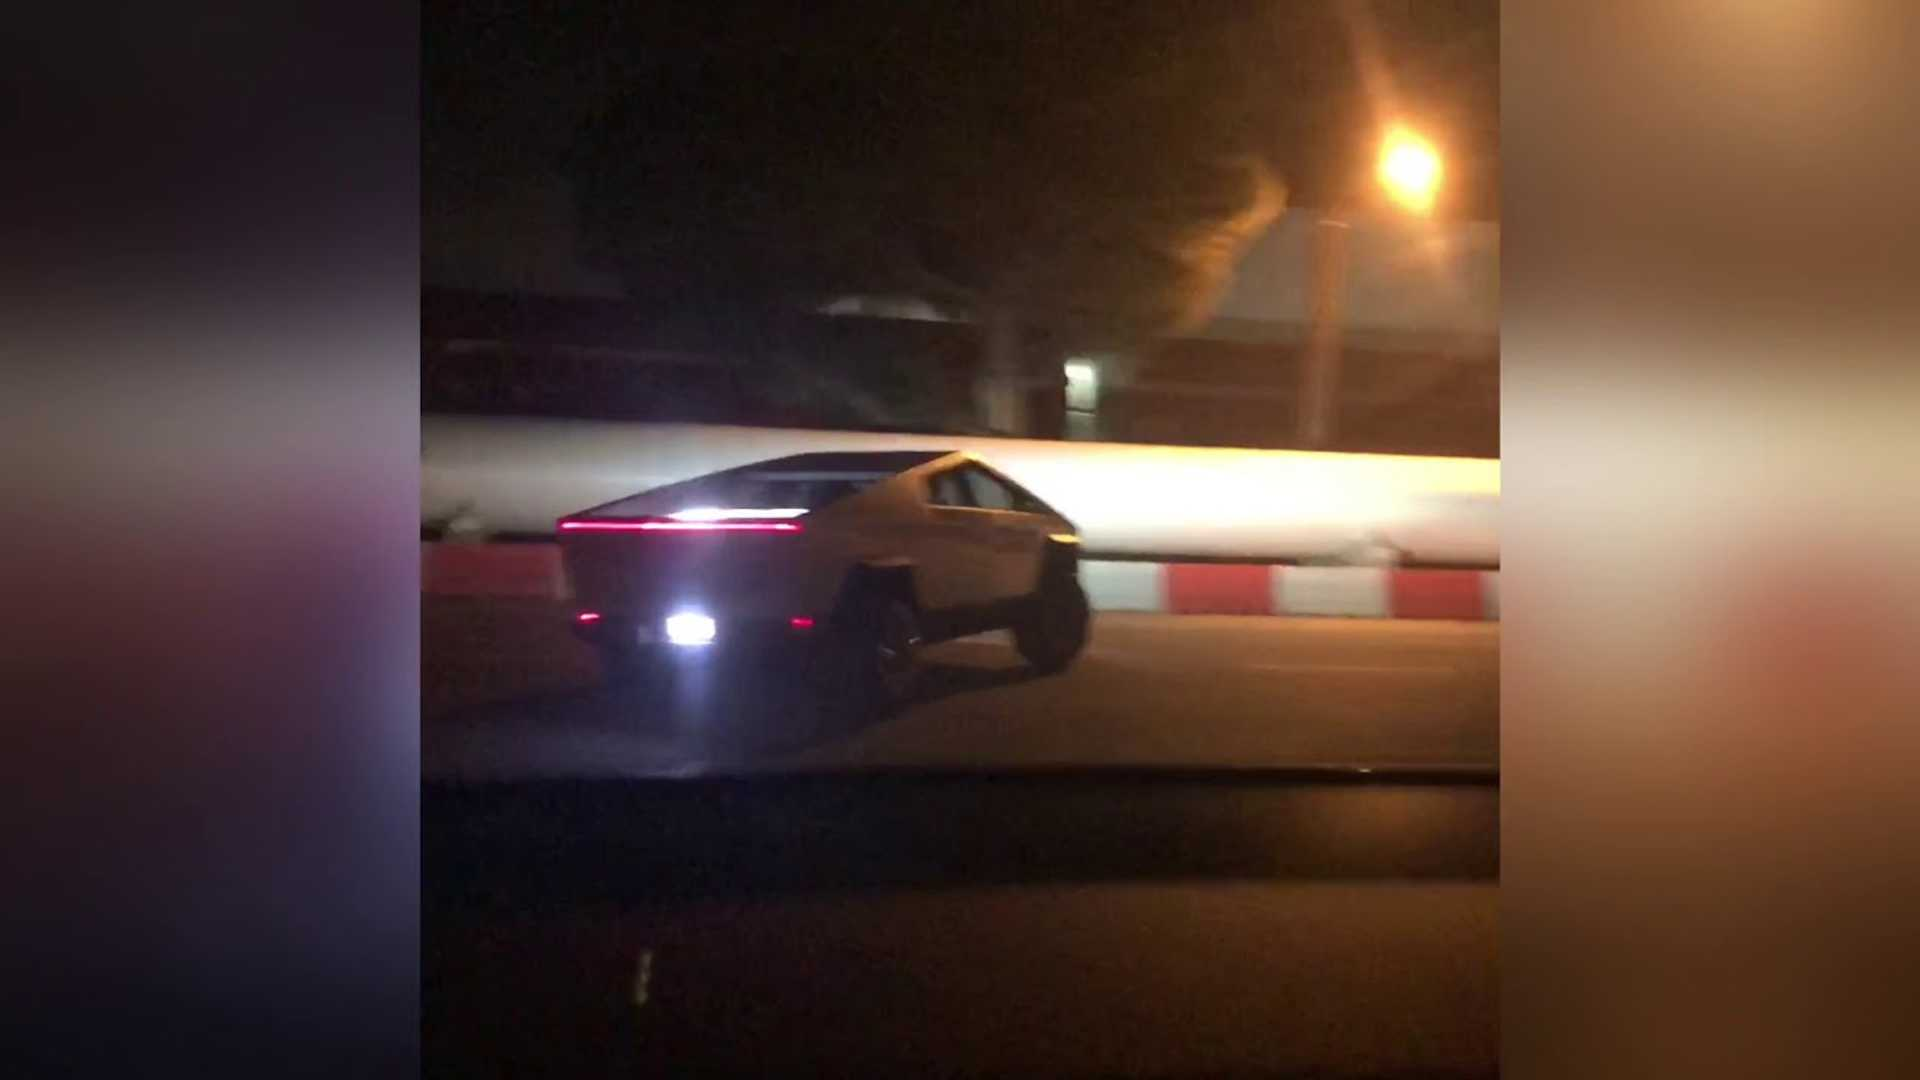 Is This Tesla Model X Really Trying To Chase The Tesla Cybertuck?